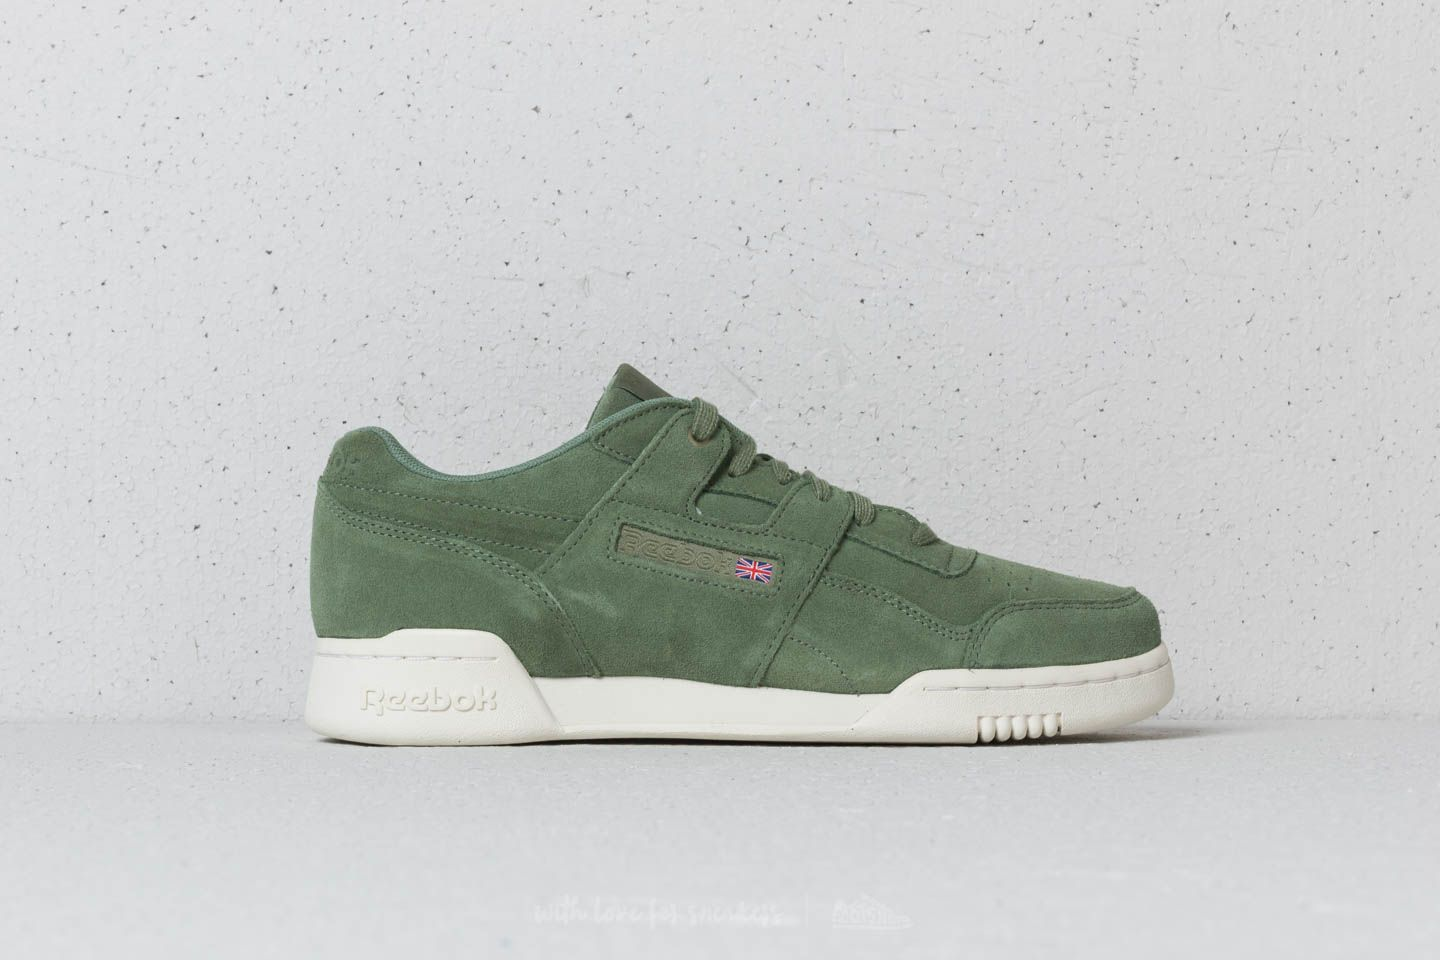 f5ef8cdaedea1 Reebok x Montana Cans Workout Plus Manila  Chalk at a great price £61 buy